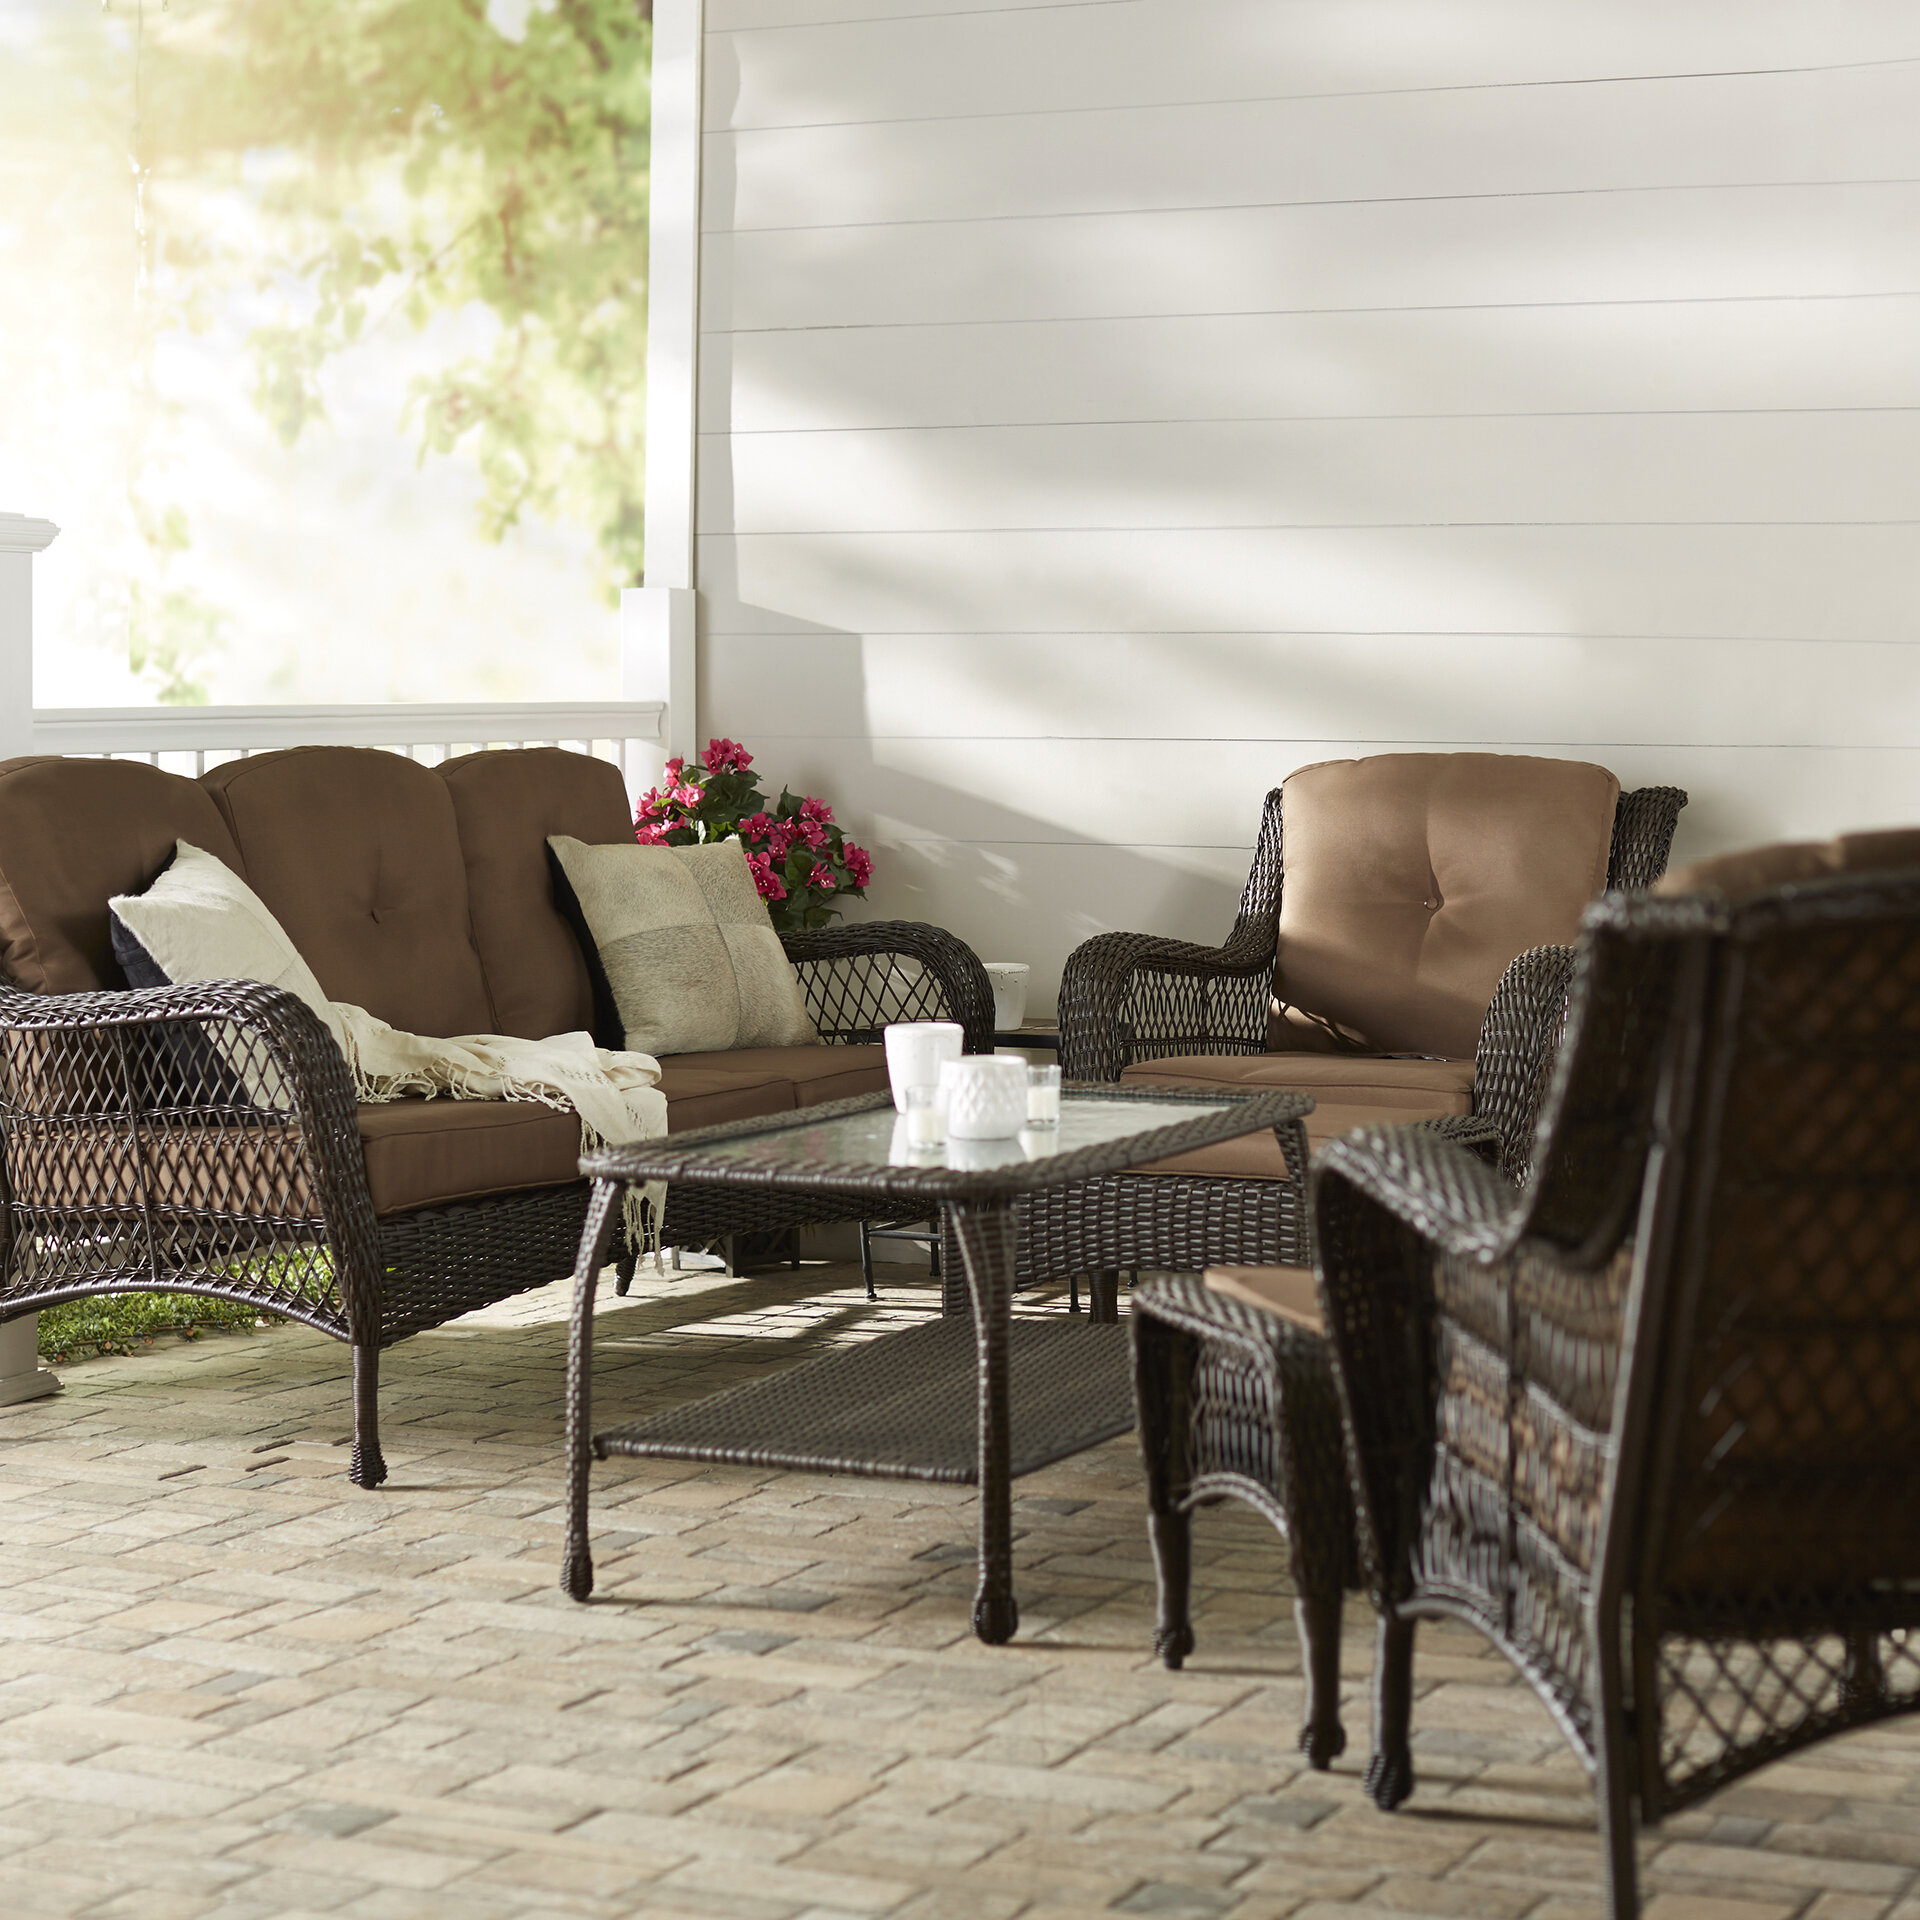 Darby Home Co Herrin 6 Piece Rattan Sofa Set With Cushions Reviews